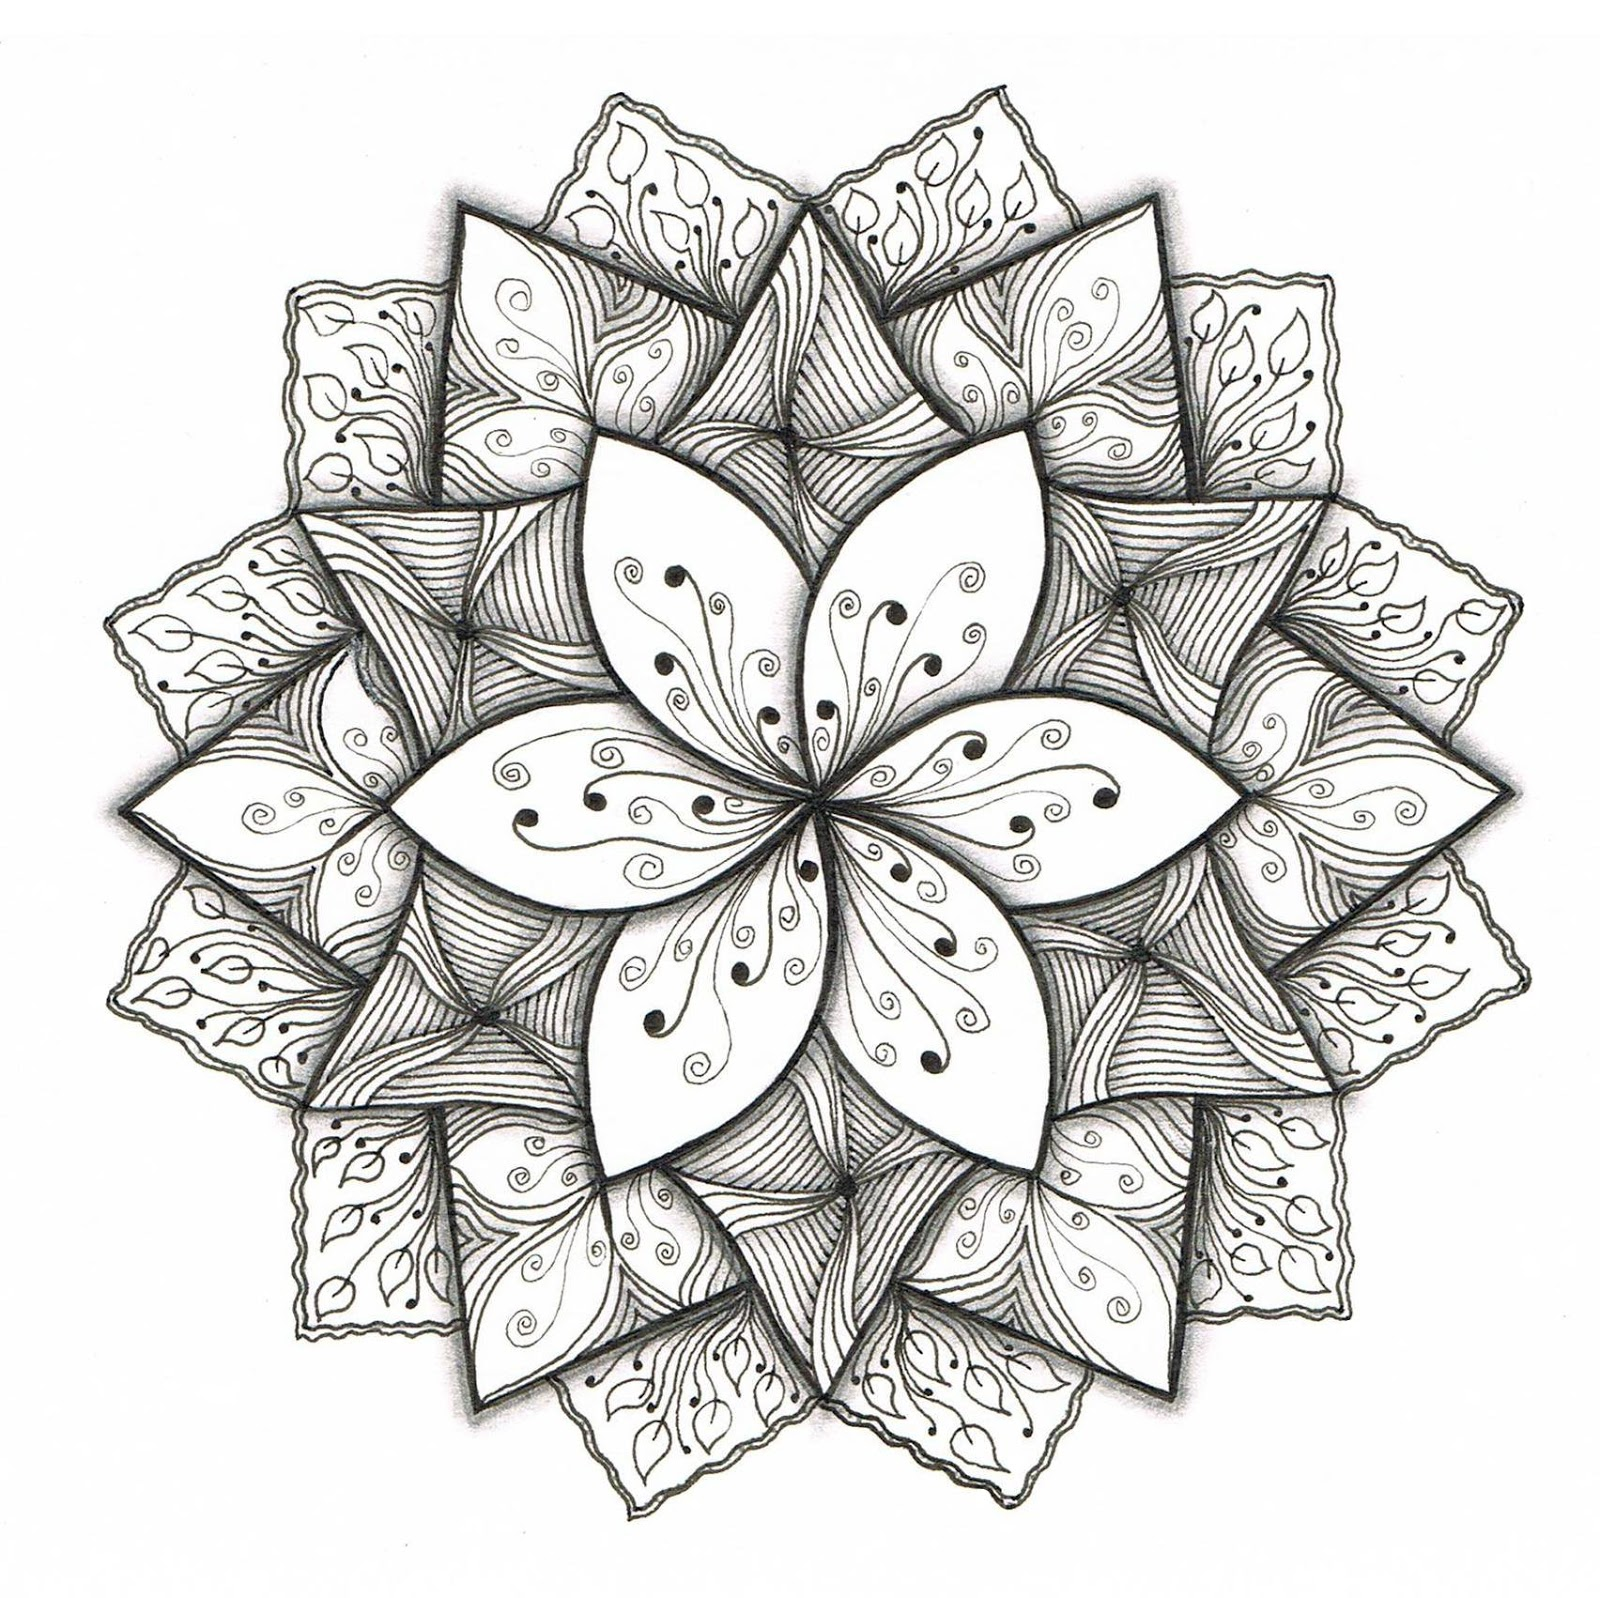 Drawn paper simple To Designs article Flower to